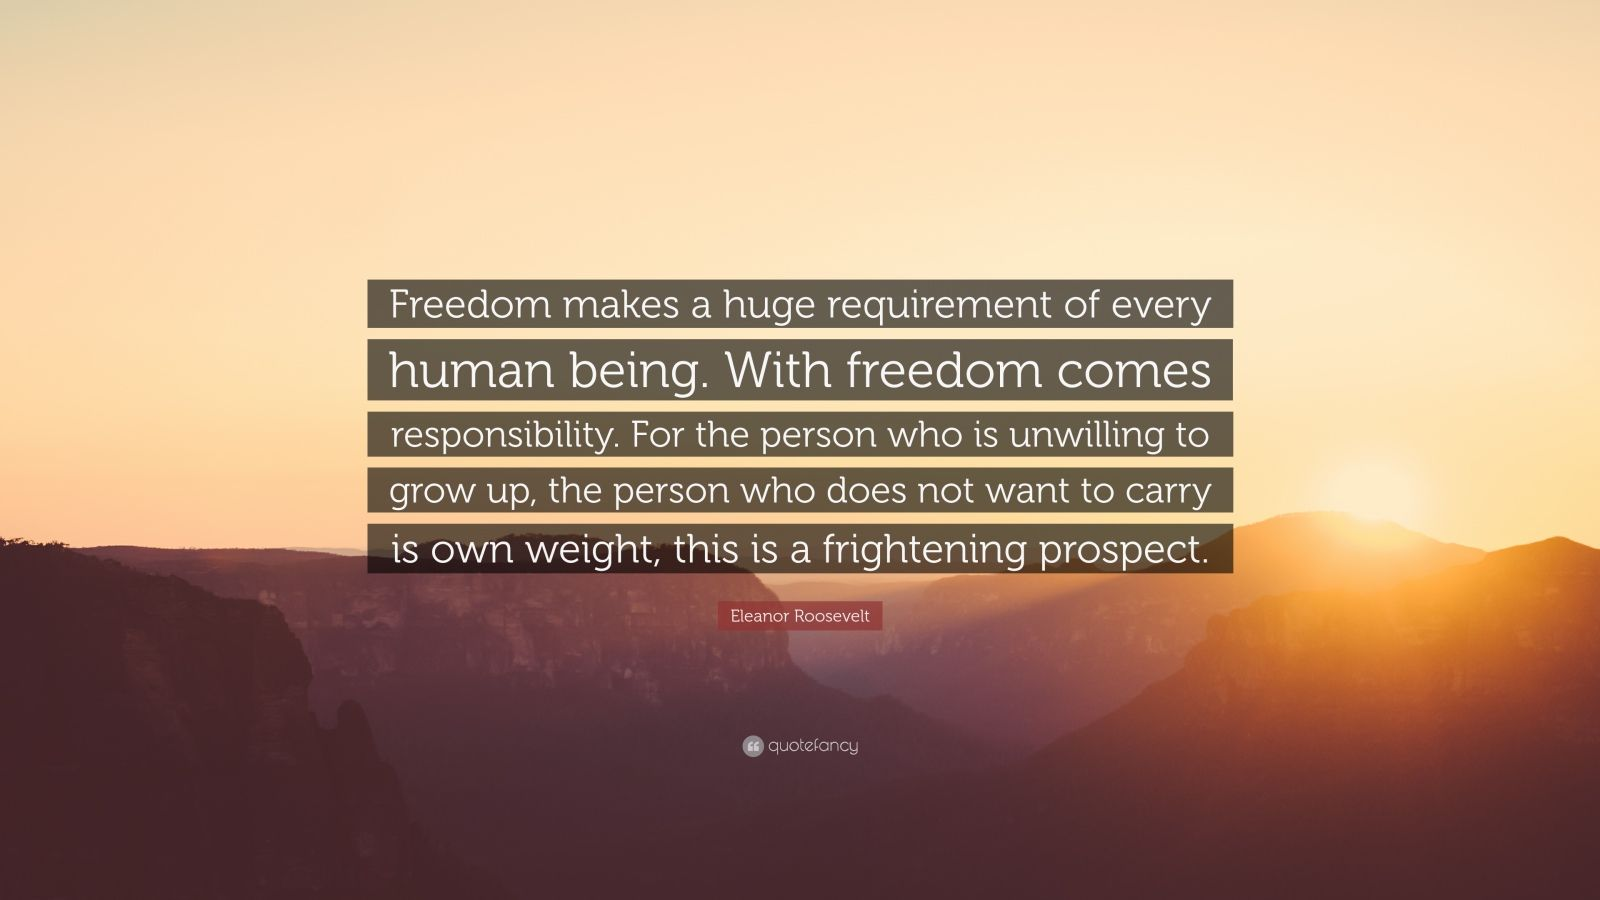 """Eleanor Roosevelt Quote: """"Freedom makes a huge requirement of every human being. With freedom comes responsibility. For the person who is unwilling to grow up, the person who does not want to carry is own weight, this is a frightening prospect."""""""